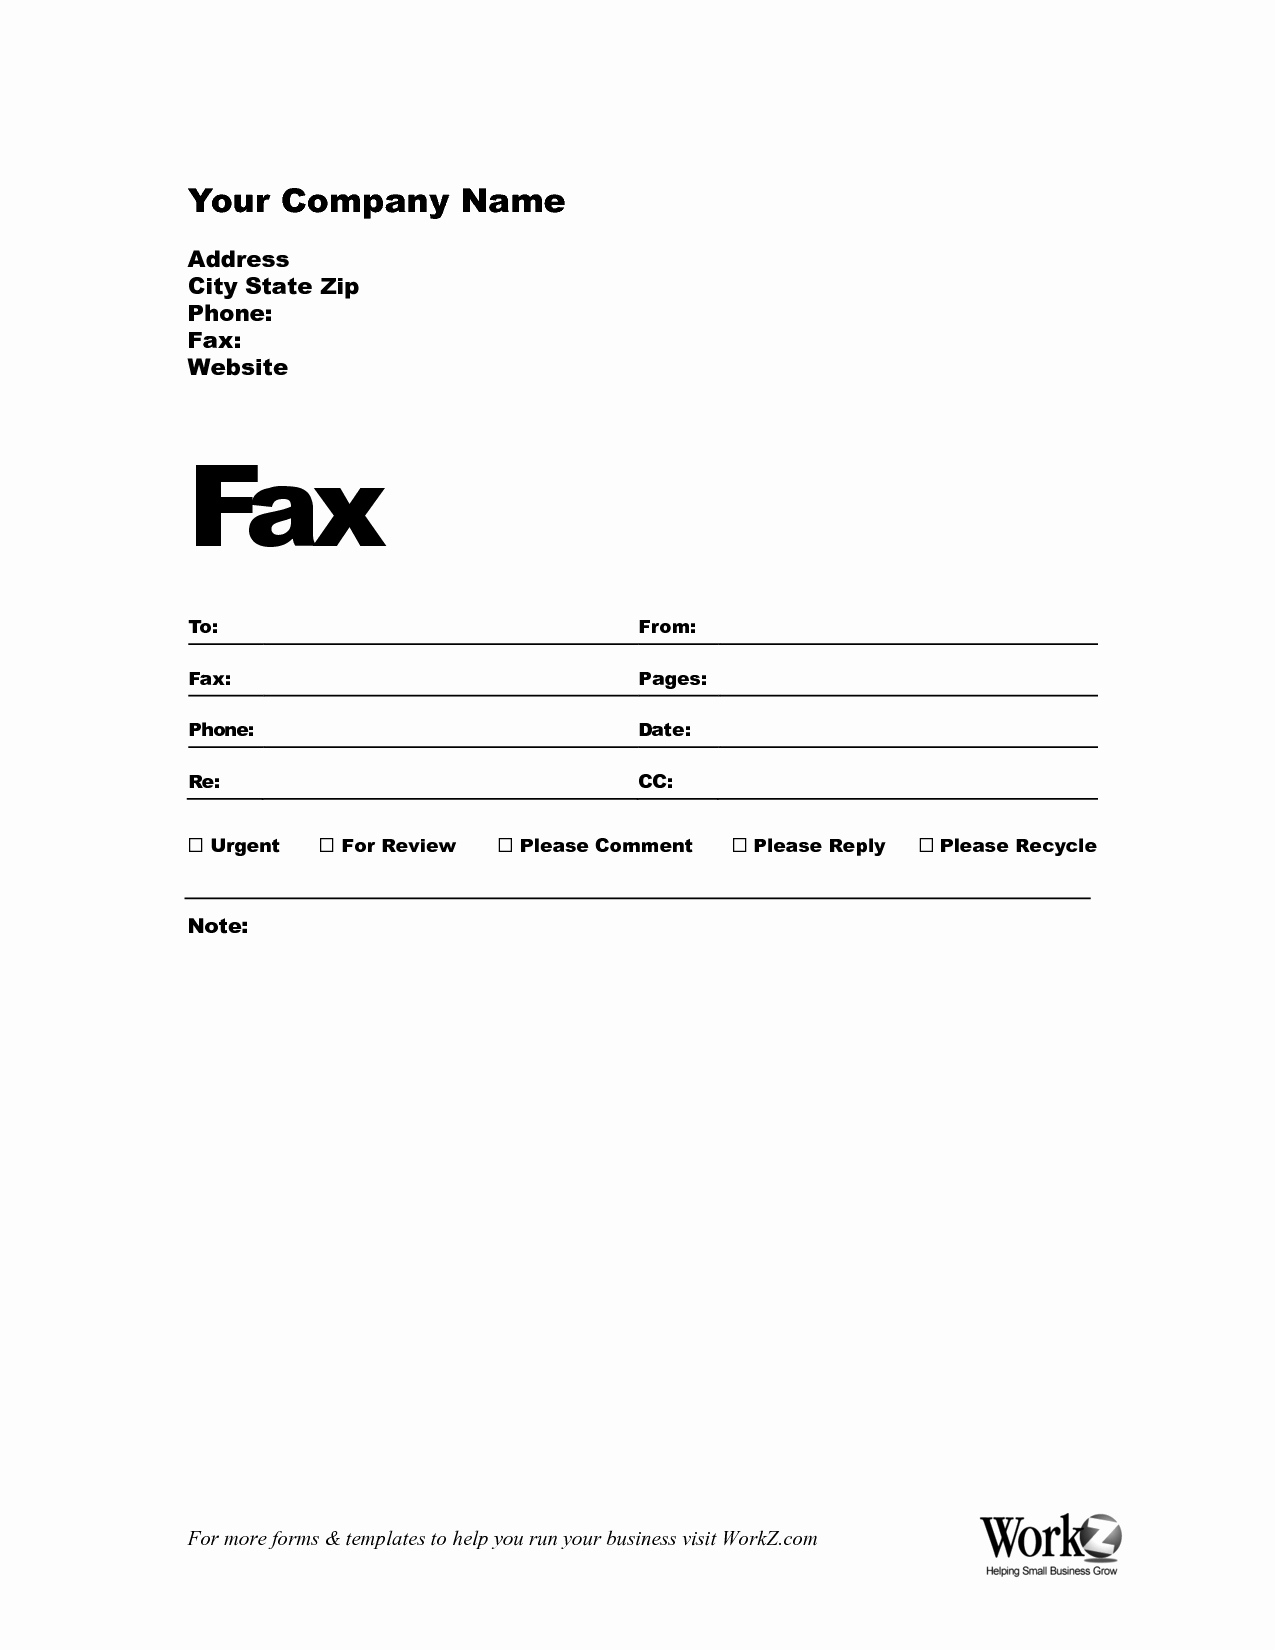 Sample Of Fax Cover Sheet Unique Free Fax Cover Sheet Template Bamboodownunder